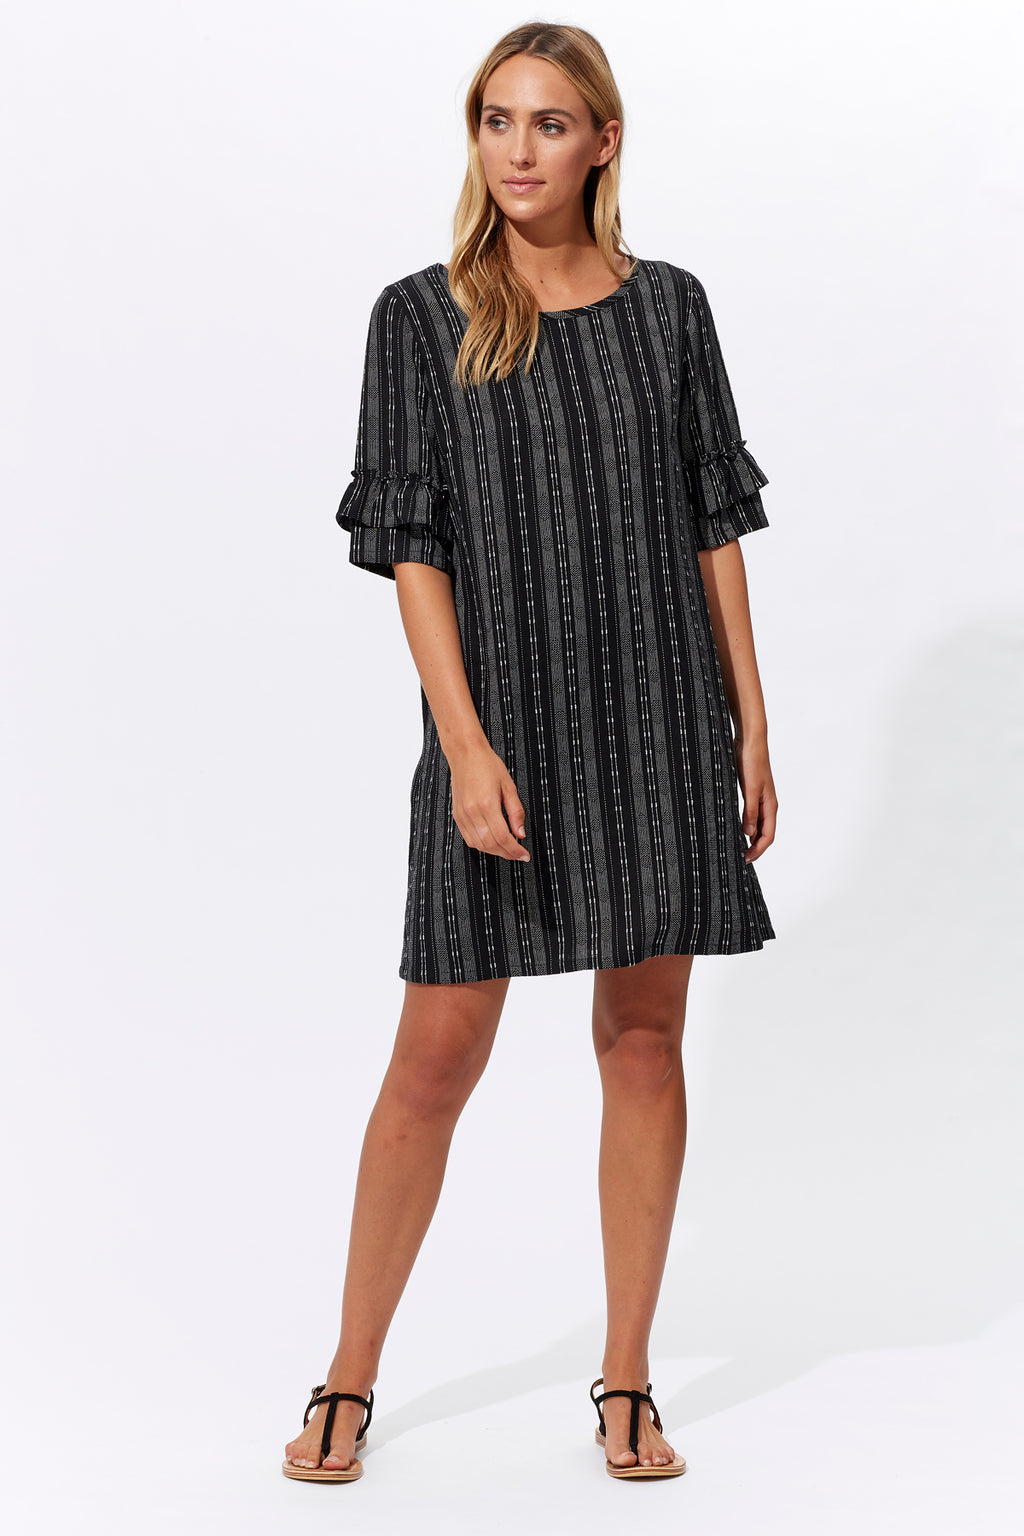 Anais Dress - Jet - Isle of Mine Clothing - Dress Mid